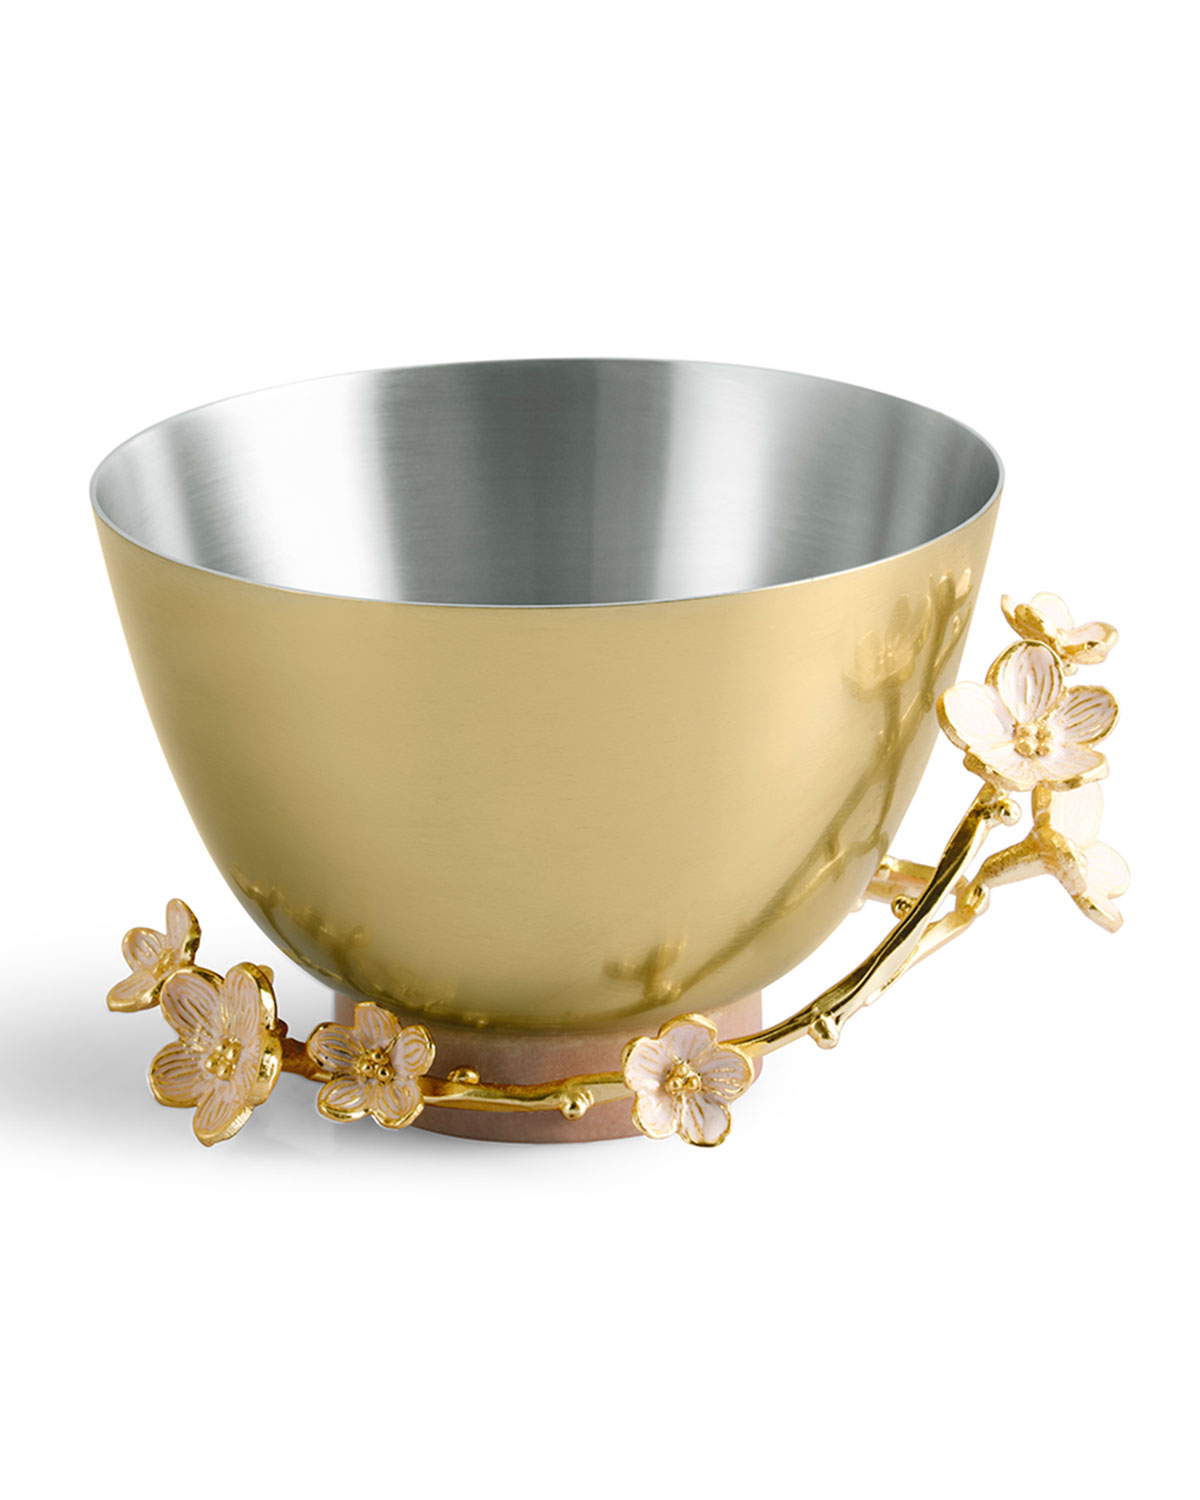 Michael Aram Cherry Blossom Small Bowl